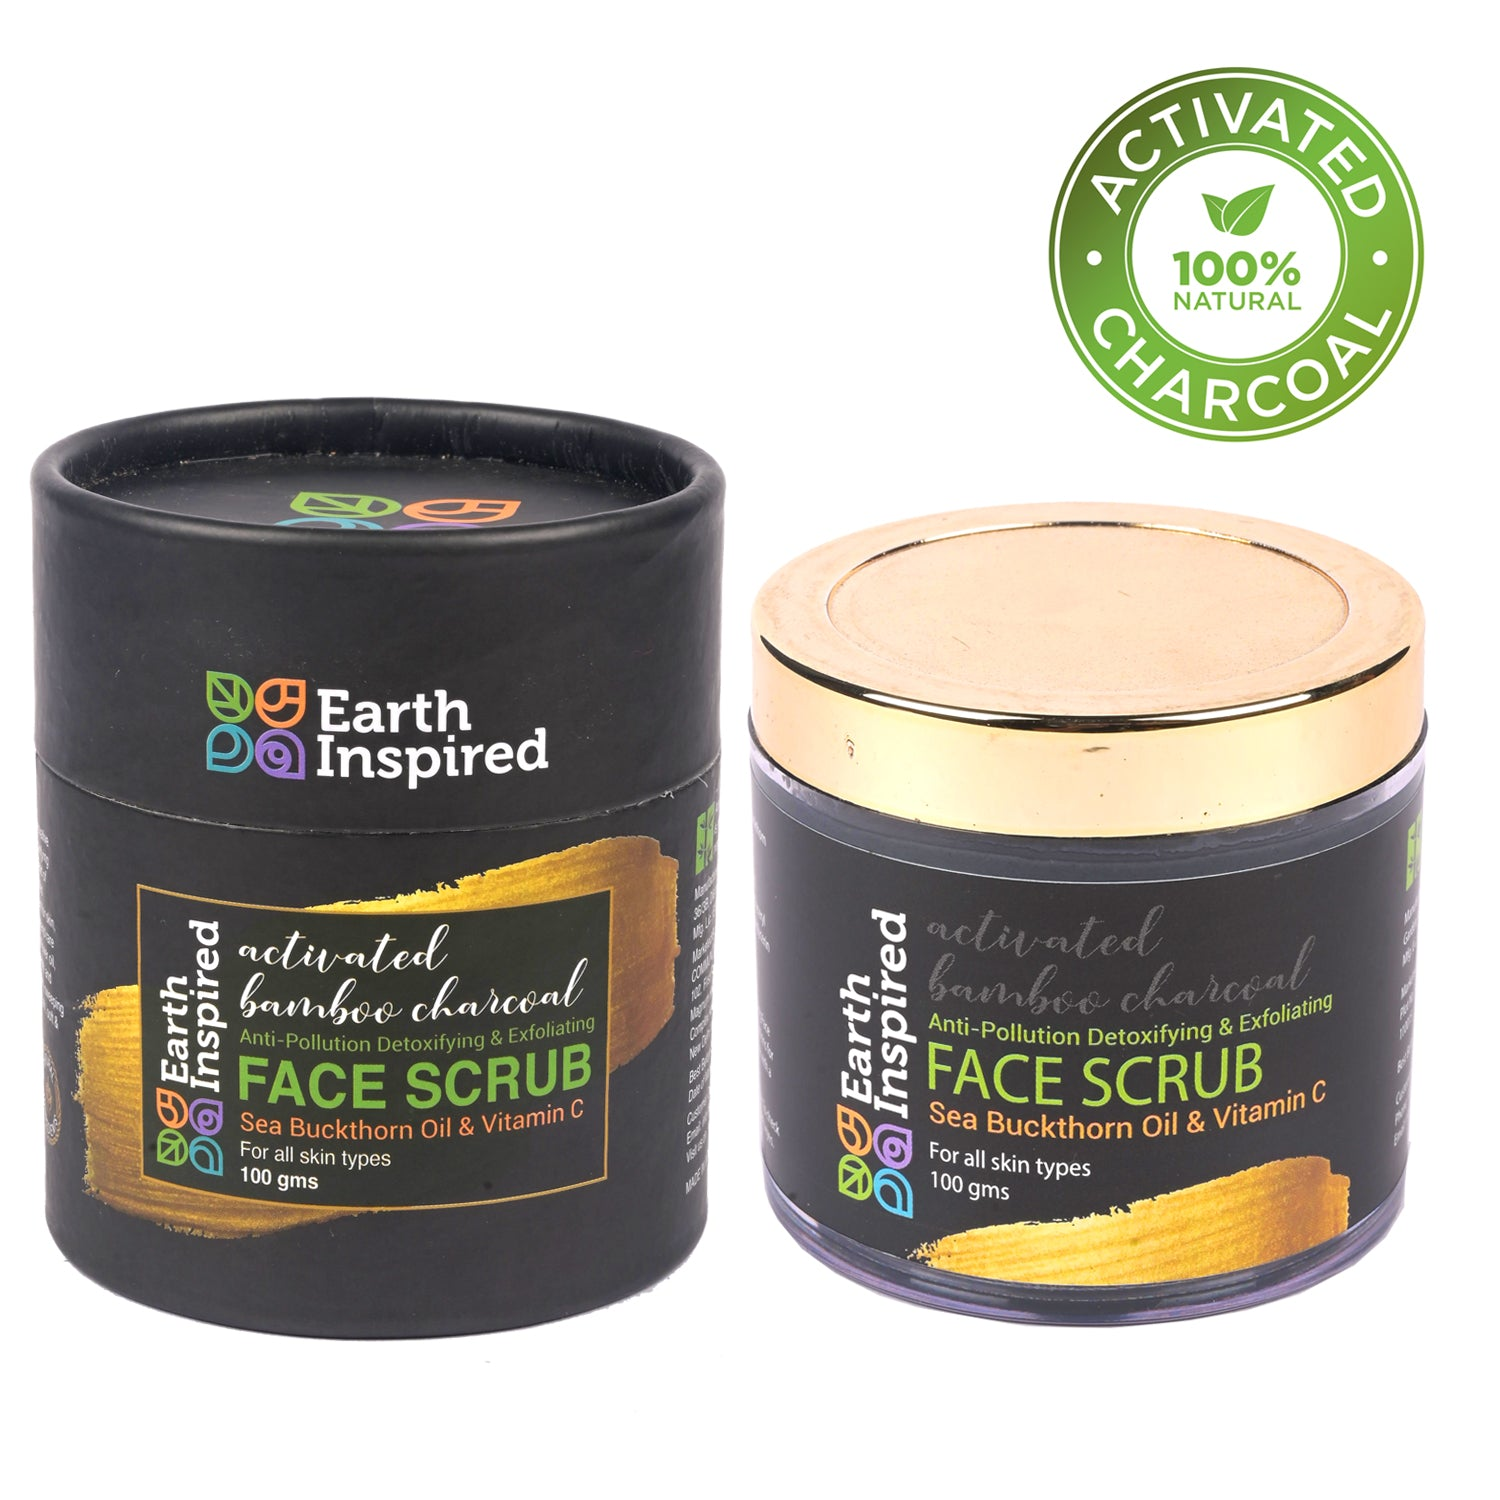 Activated Bamboo Charcoal Face Scrub | Earth Inspired